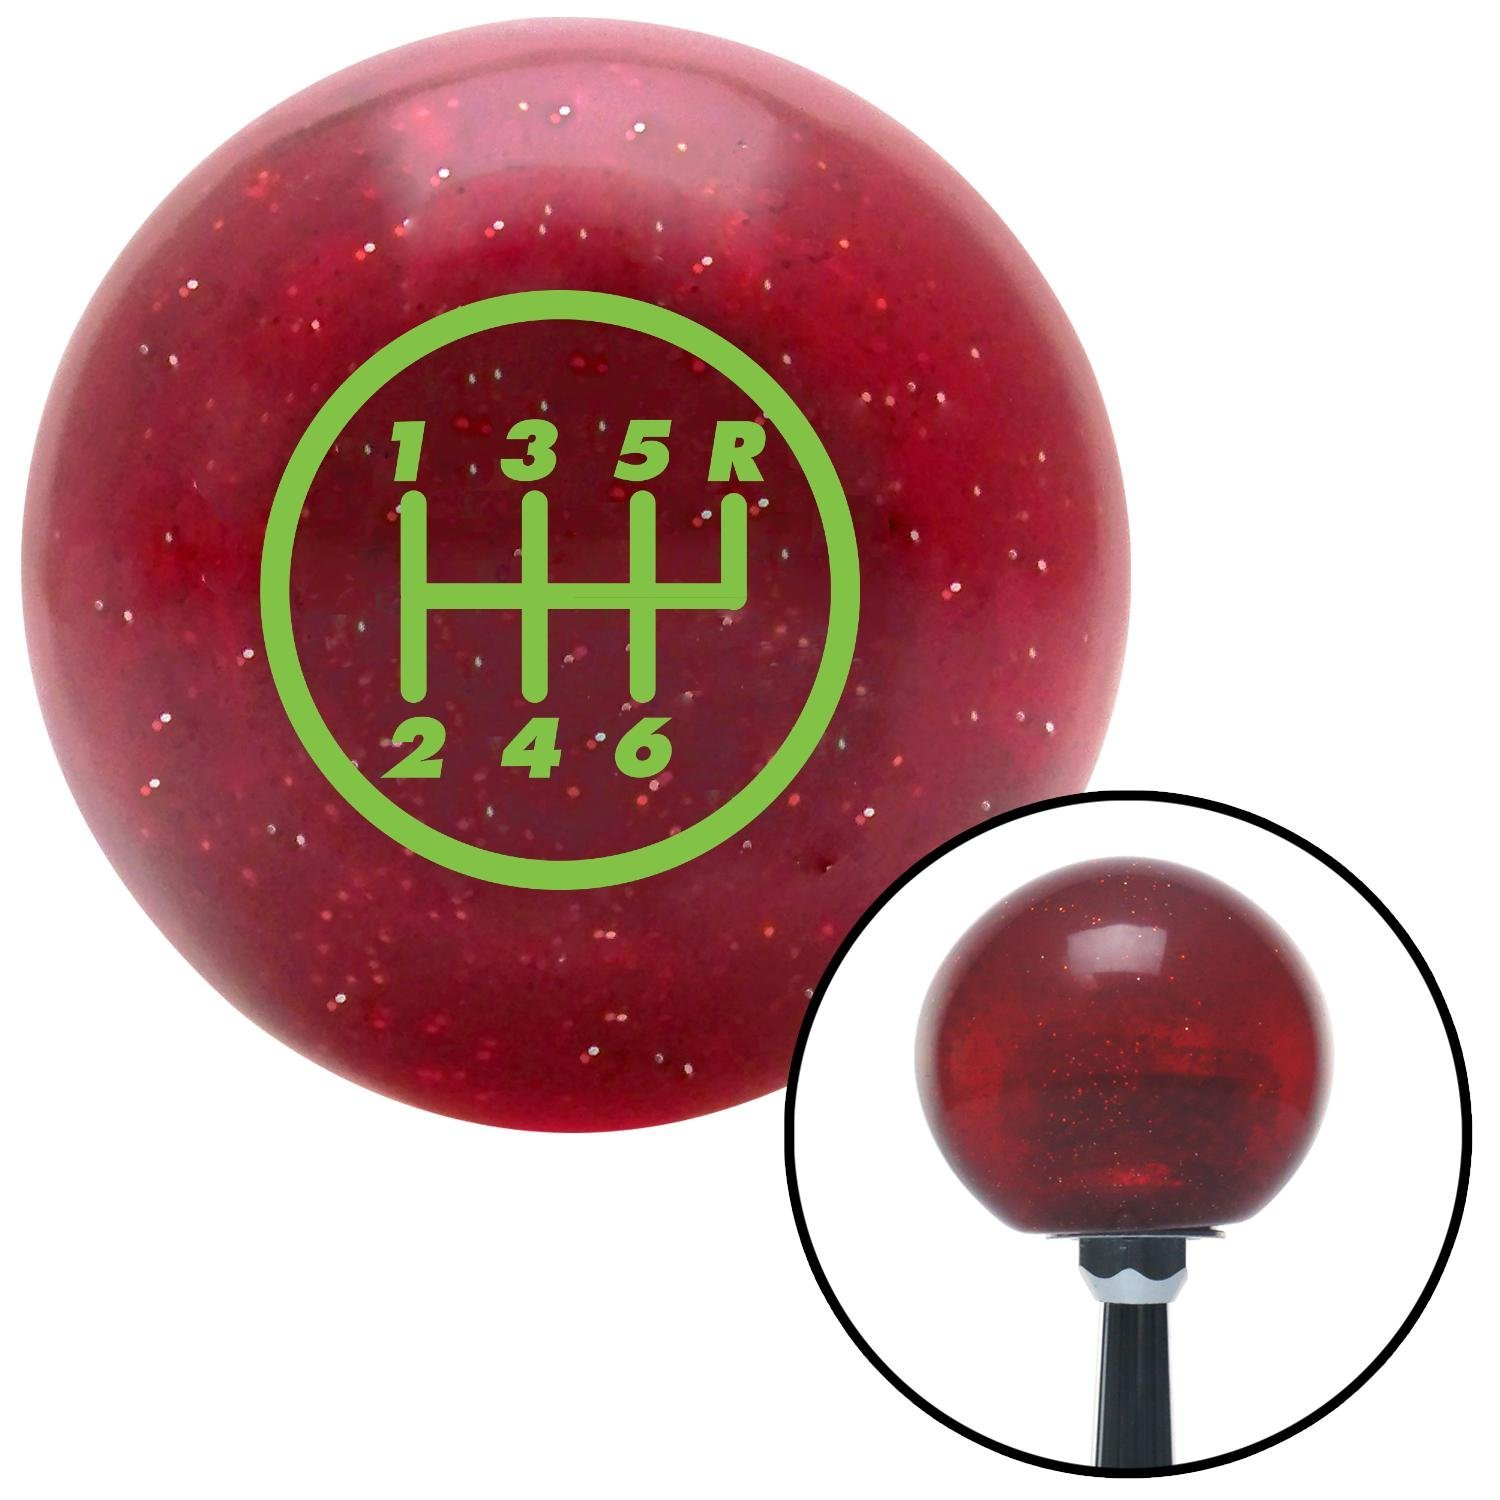 American Shifter 46744 Red Metal Flake Shift Knob with 16mm x 1.5 Insert Green 6 Speed Shift Pattern - 6RUR